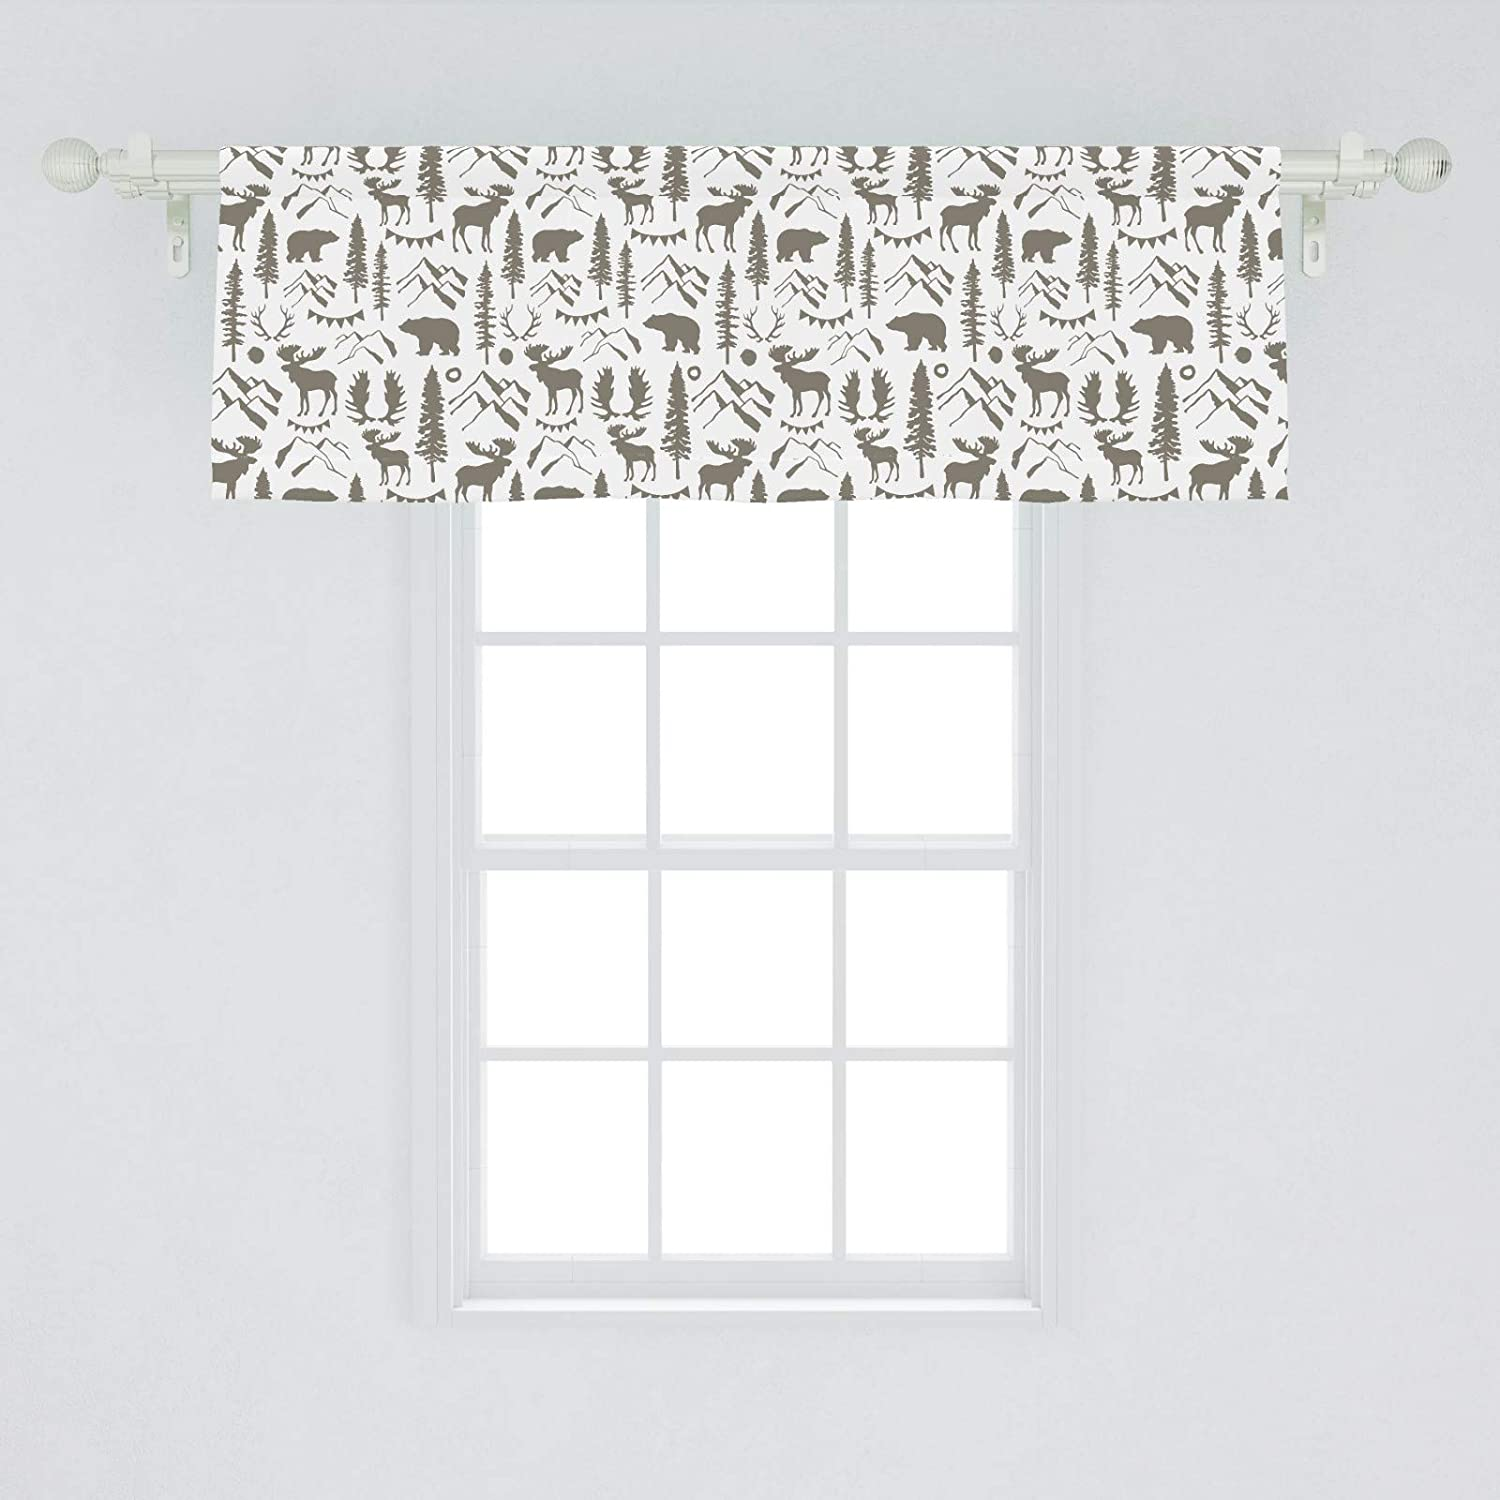 "Ambesonne Northwoods Window Valance, Forest Elements with Bear Moose Trees and Mountains Wildlife Nature Theme, Curtain Valance for Kitchen Bedroom Decor with Rod Pocket, 54"" X 18"", Taupe White"